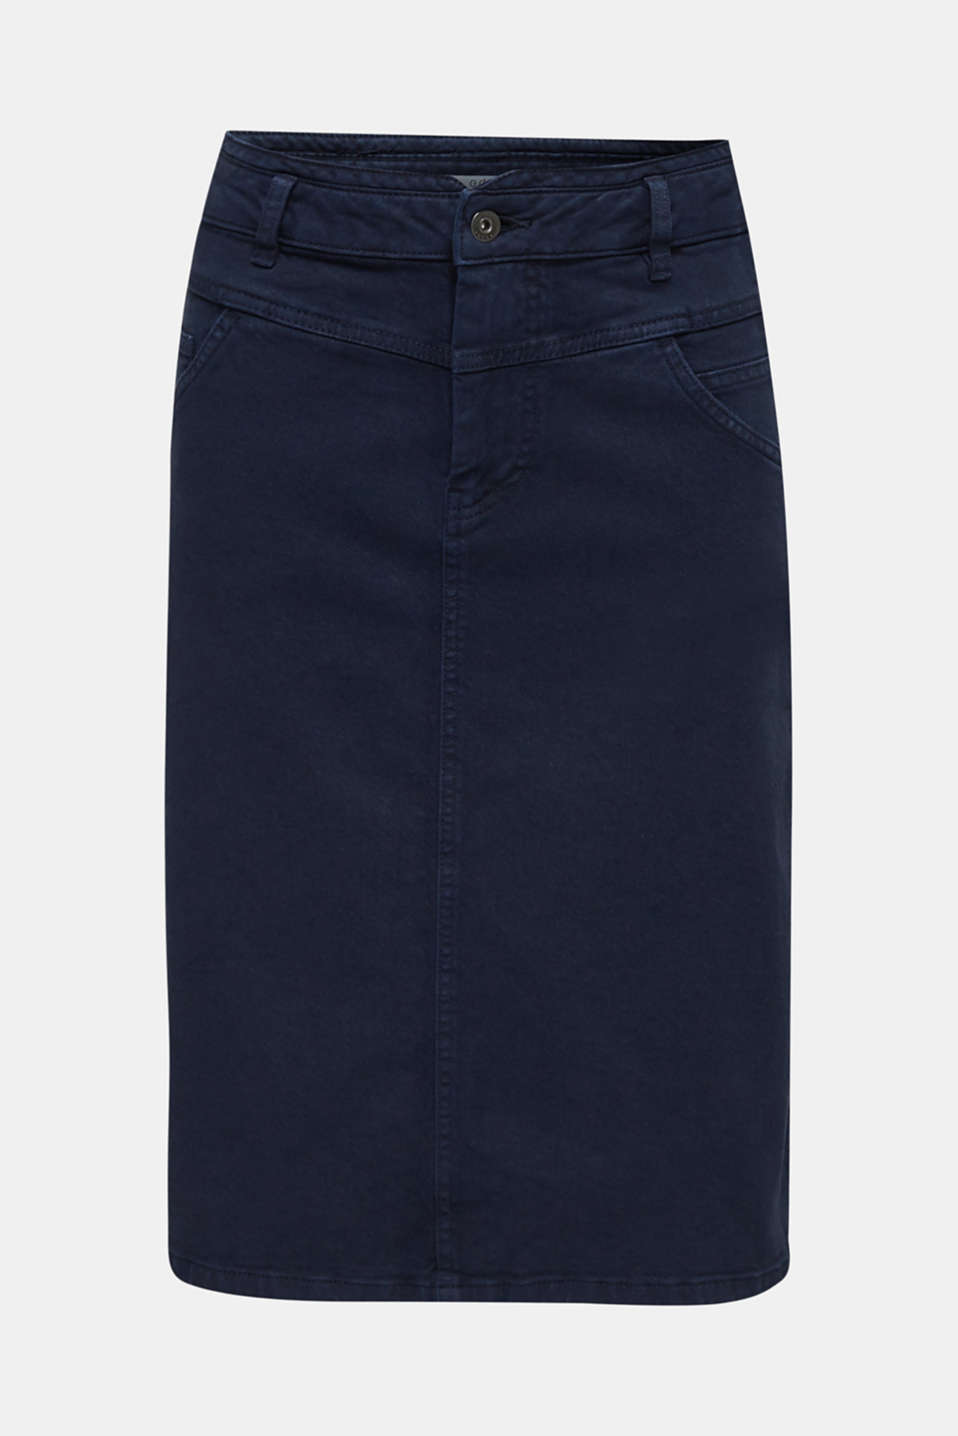 Stretch cotton skirt, NAVY, detail image number 6